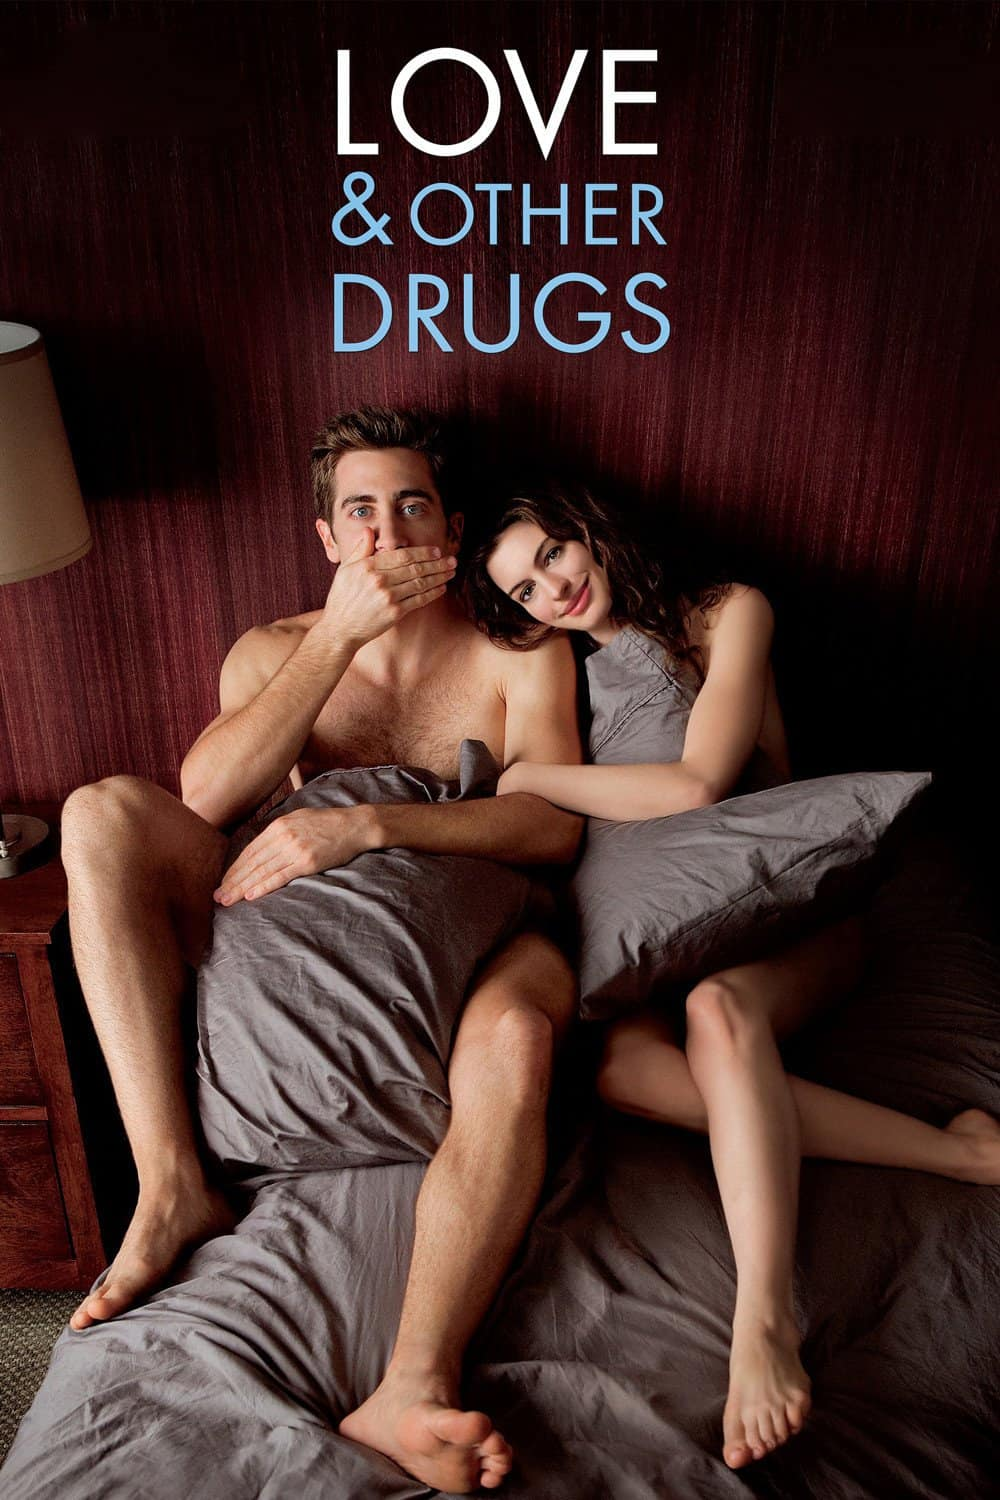 Love and Other Drugs, 2010